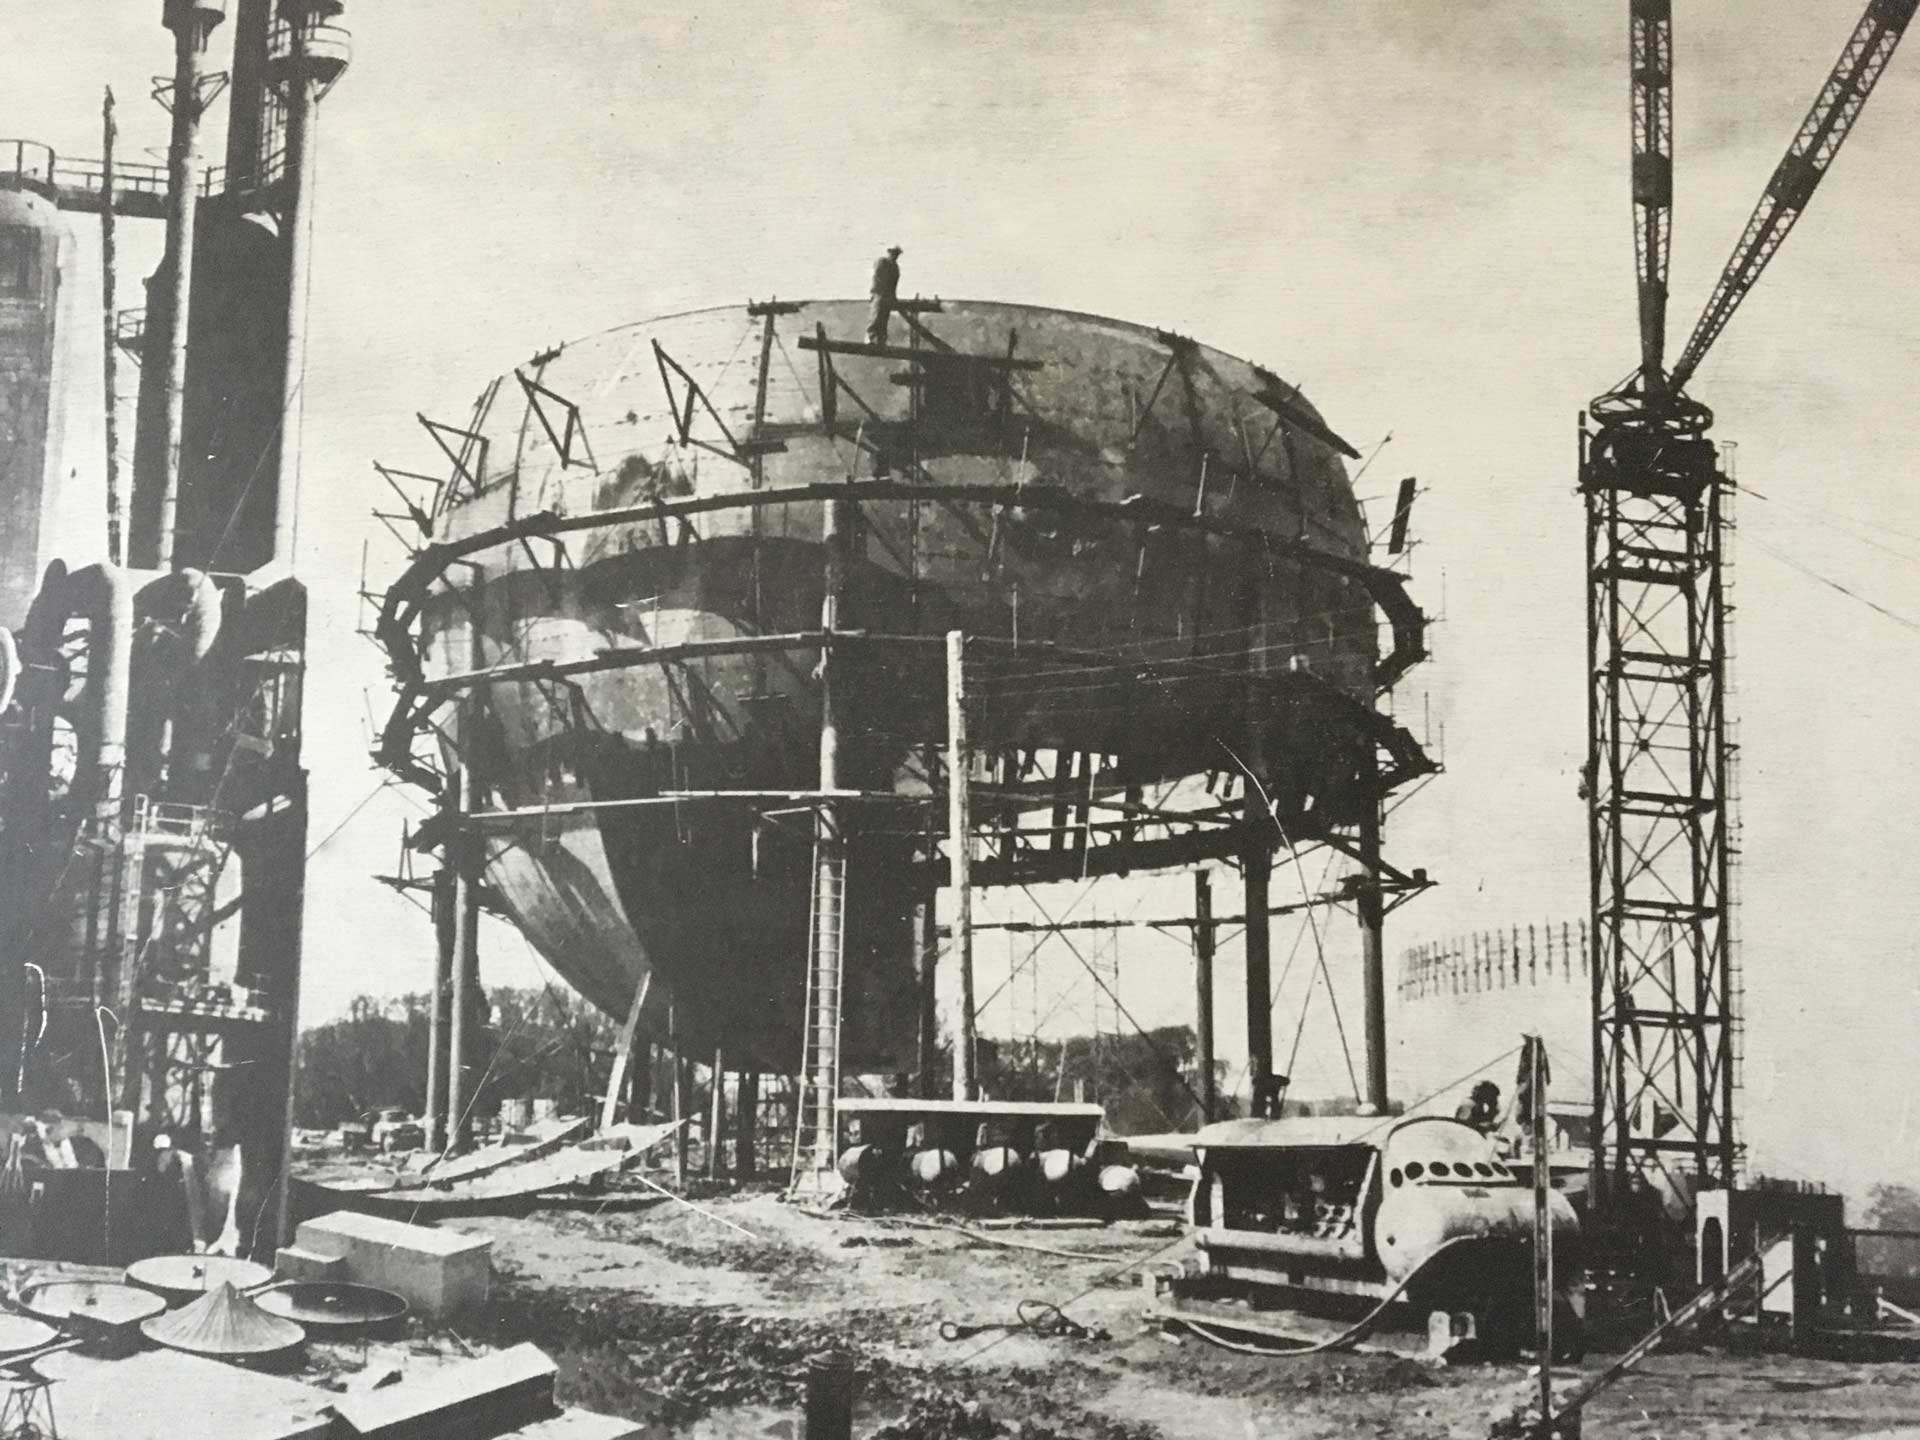 Our History - TIW Steel Platework Inc